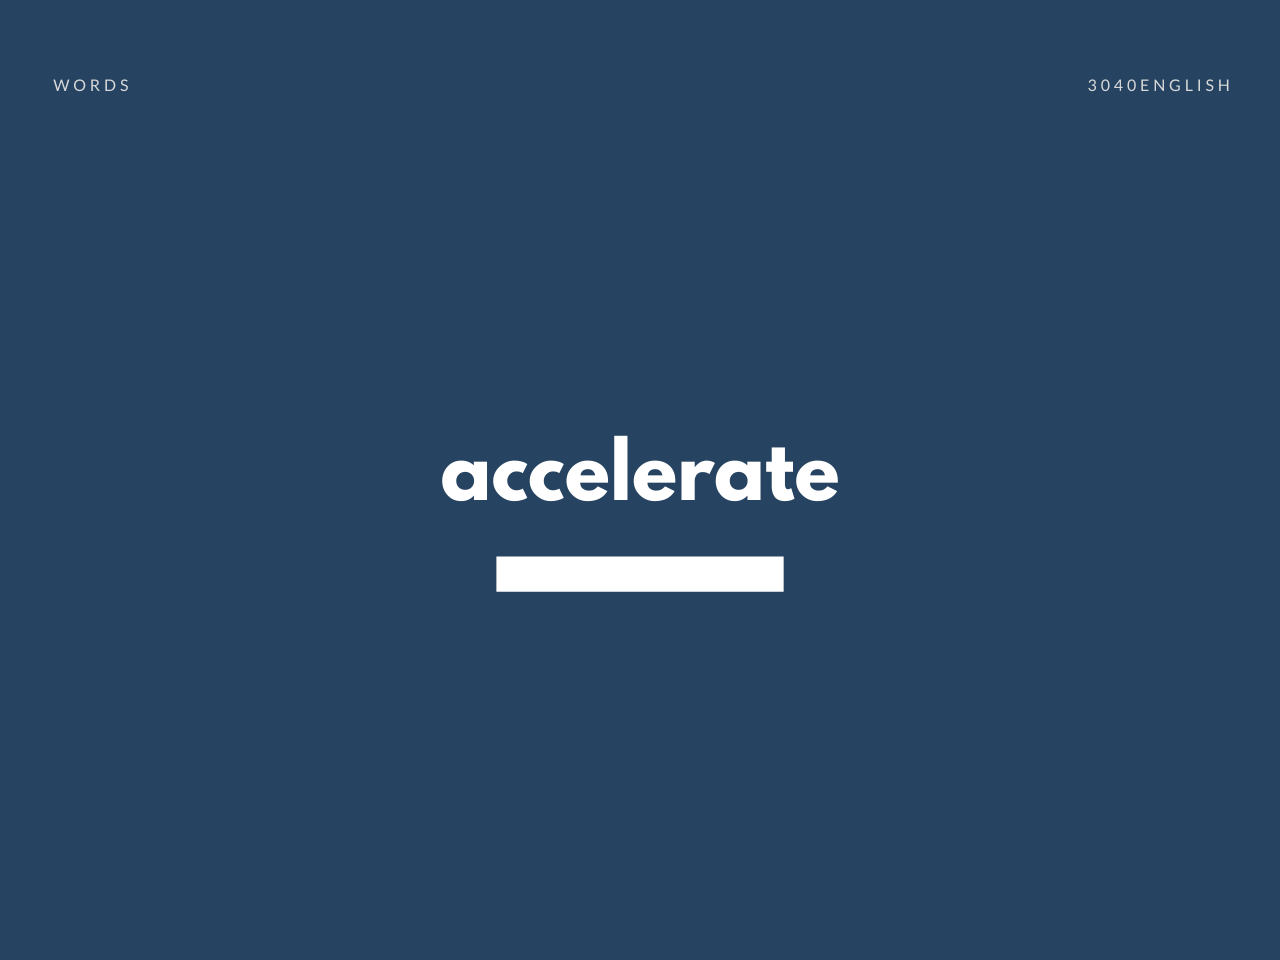 accelerate の意味と簡単な使い方【音読用例文あり】